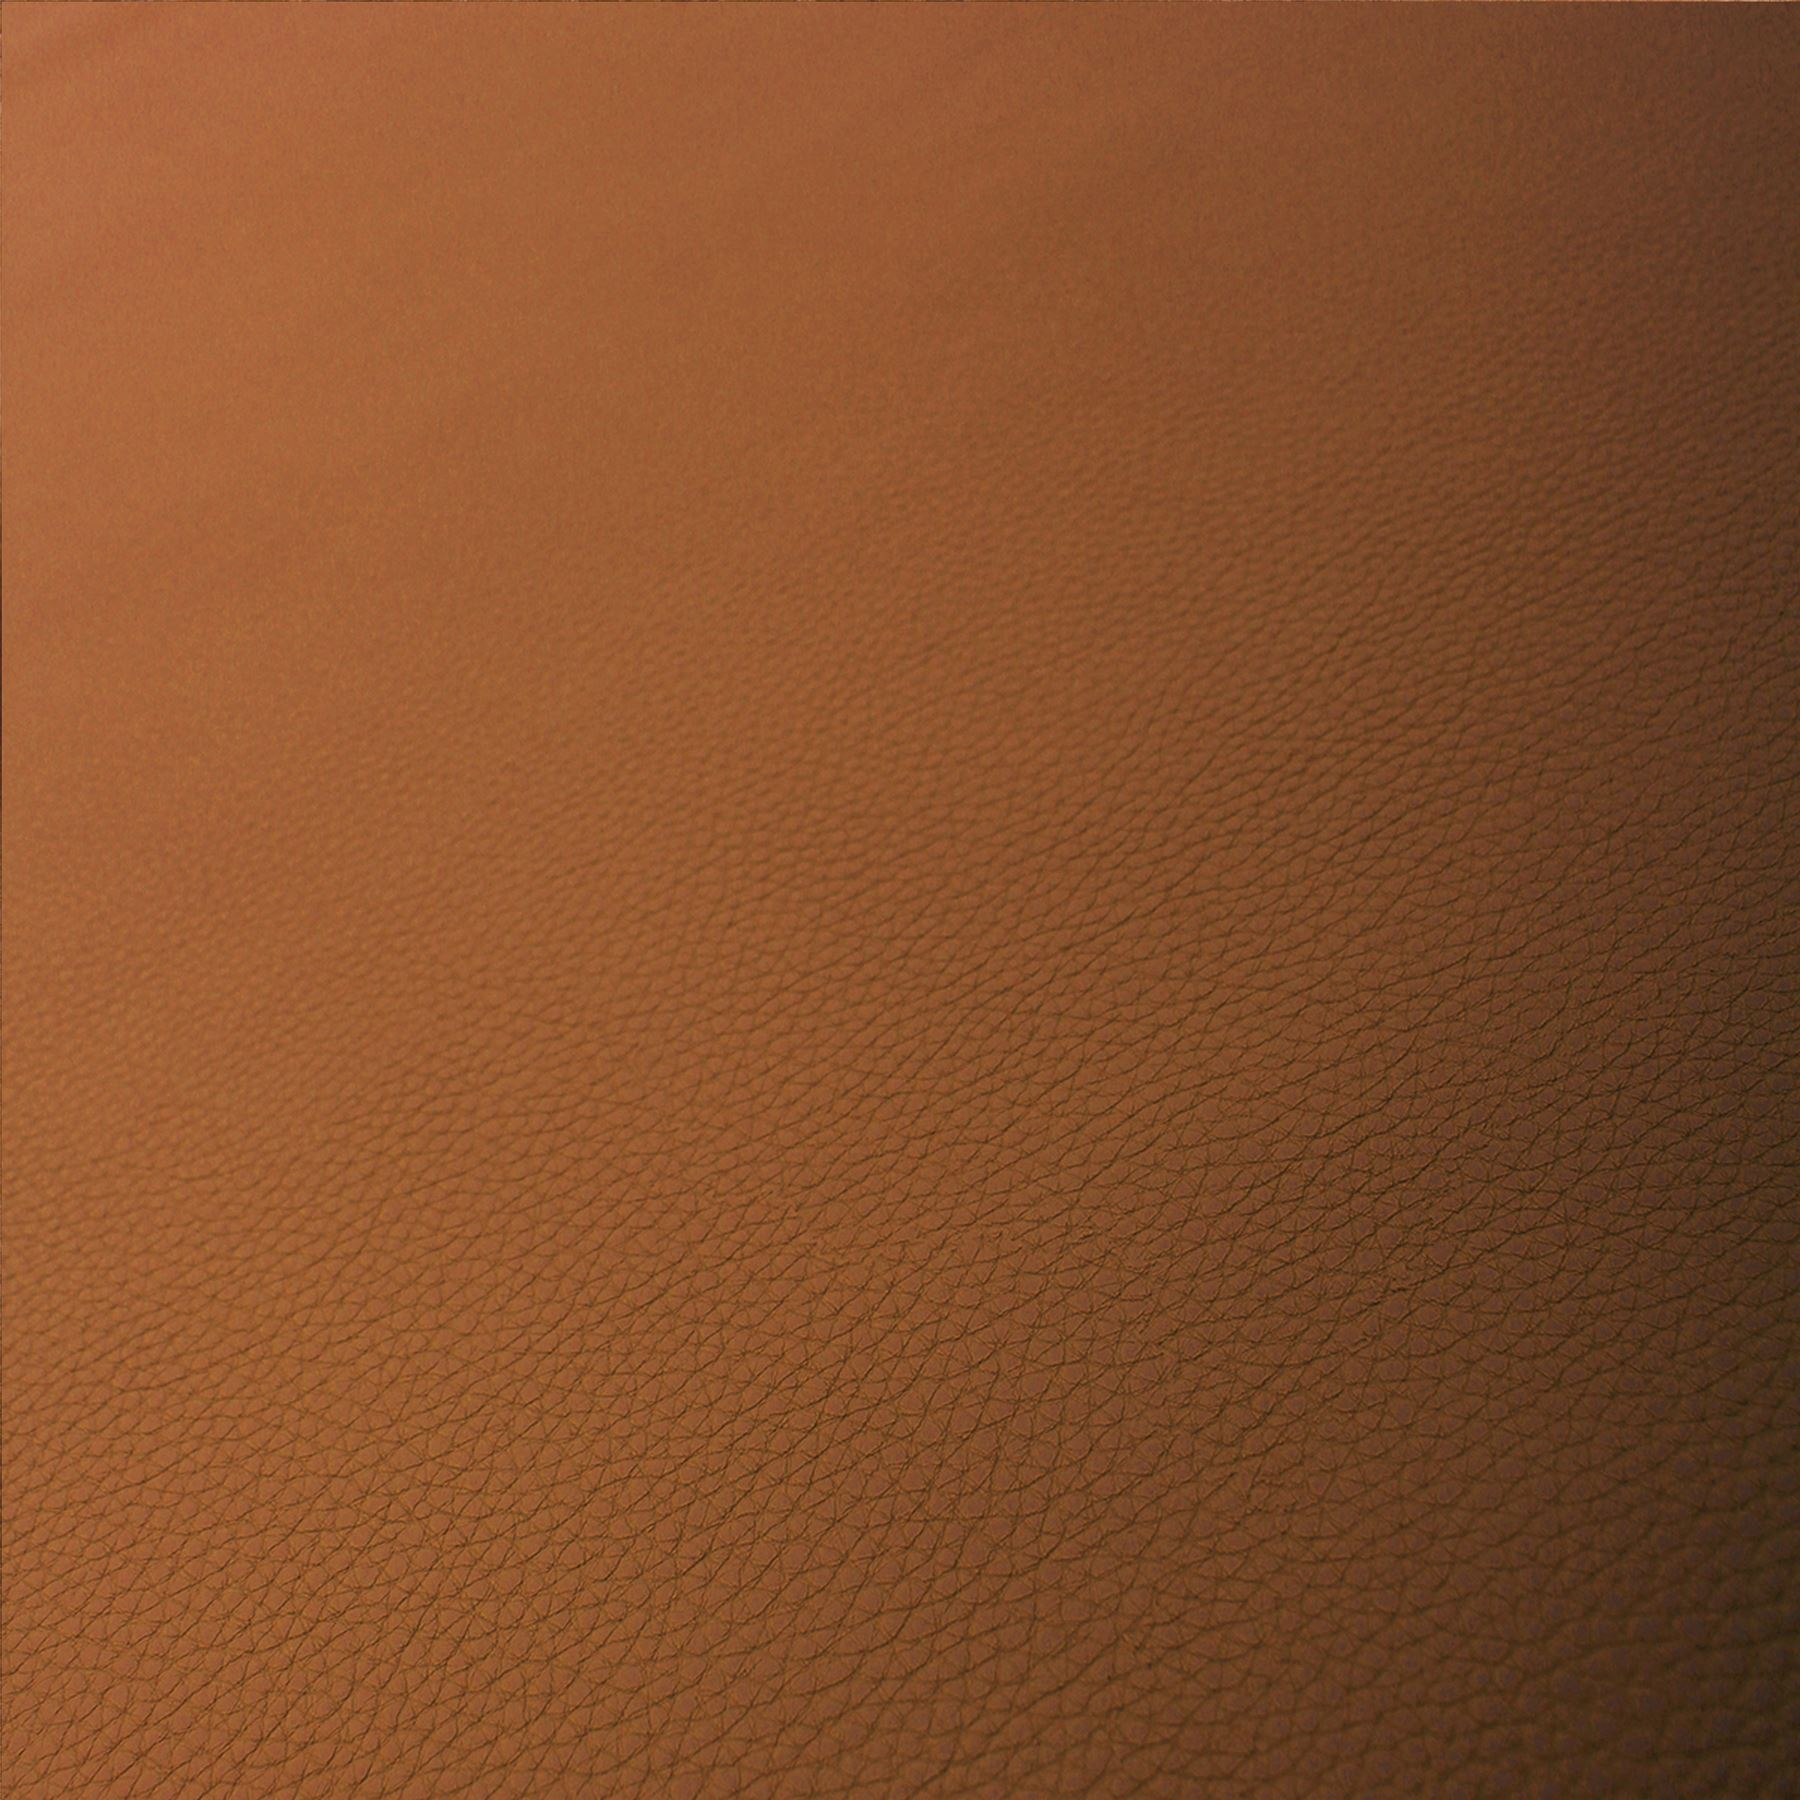 Nova-Faux-Leatherette-Artificial-Leather-Heavy-Grain-Upholstery-Vehicle-Fabric thumbnail 10